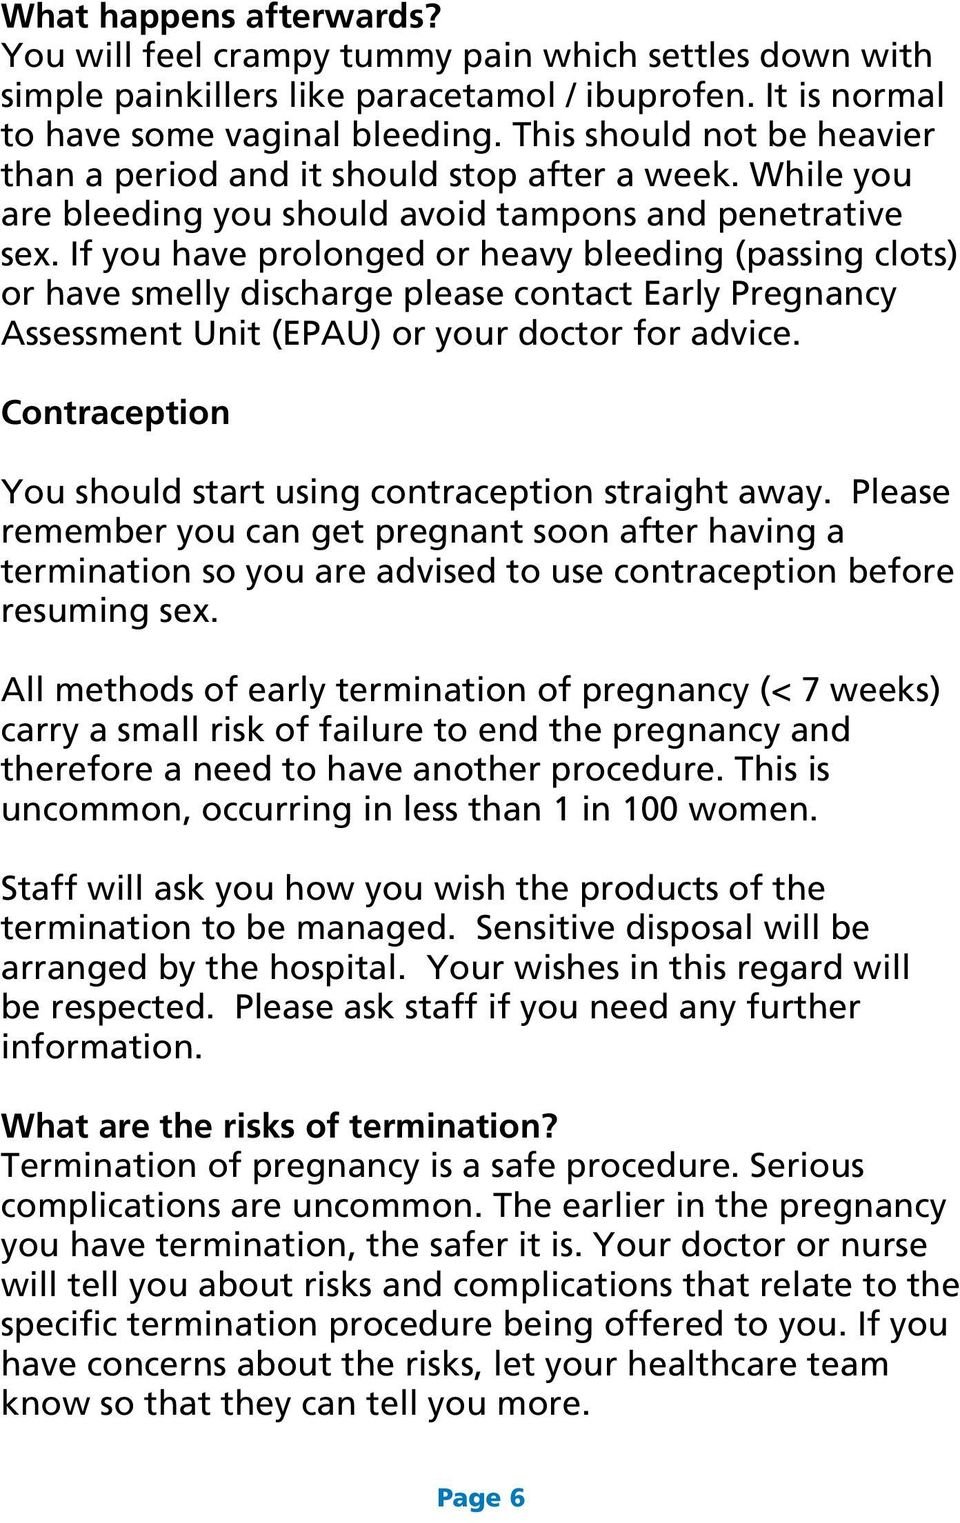 If you have prolonged or heavy bleeding (passing clots) or have smelly discharge please contact Early Pregnancy Assessment Unit (EPAU) or your doctor for advice.